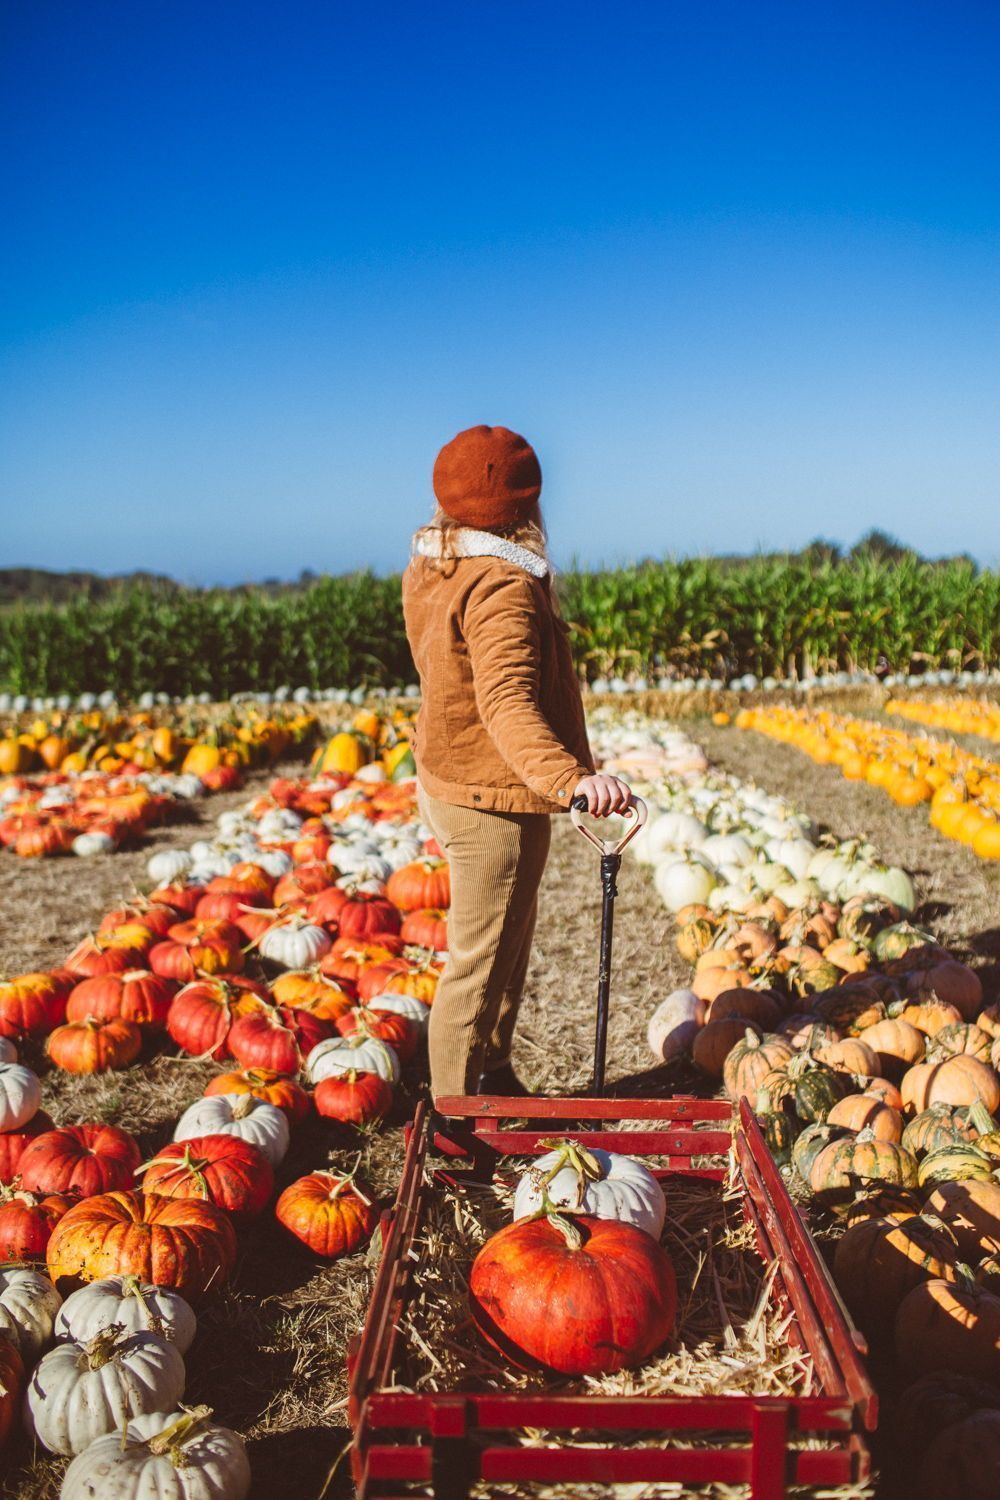 OH MY GOURD, These Are The Cutest Pumpkin Patch Outfit Ideas EVER #pumpkinpatchoutfitwomen I found the most charming Half Moon Bay Pumpkin patch for day date hunting from the city! Put on a cute pumpkin patch outfit & drove down to the farm called #pumpkinpatch OH MY GOURD, These Are The Cutest Pumpkin Patch Outfit Ideas EVER #pumpkinpatchoutfitwomen I found the most charming Half Moon Bay Pumpkin patch for day date hunting from the city! Put on a cute pumpkin patch outfit & drove down to the fa #pumpkinpatchoutfitwomen